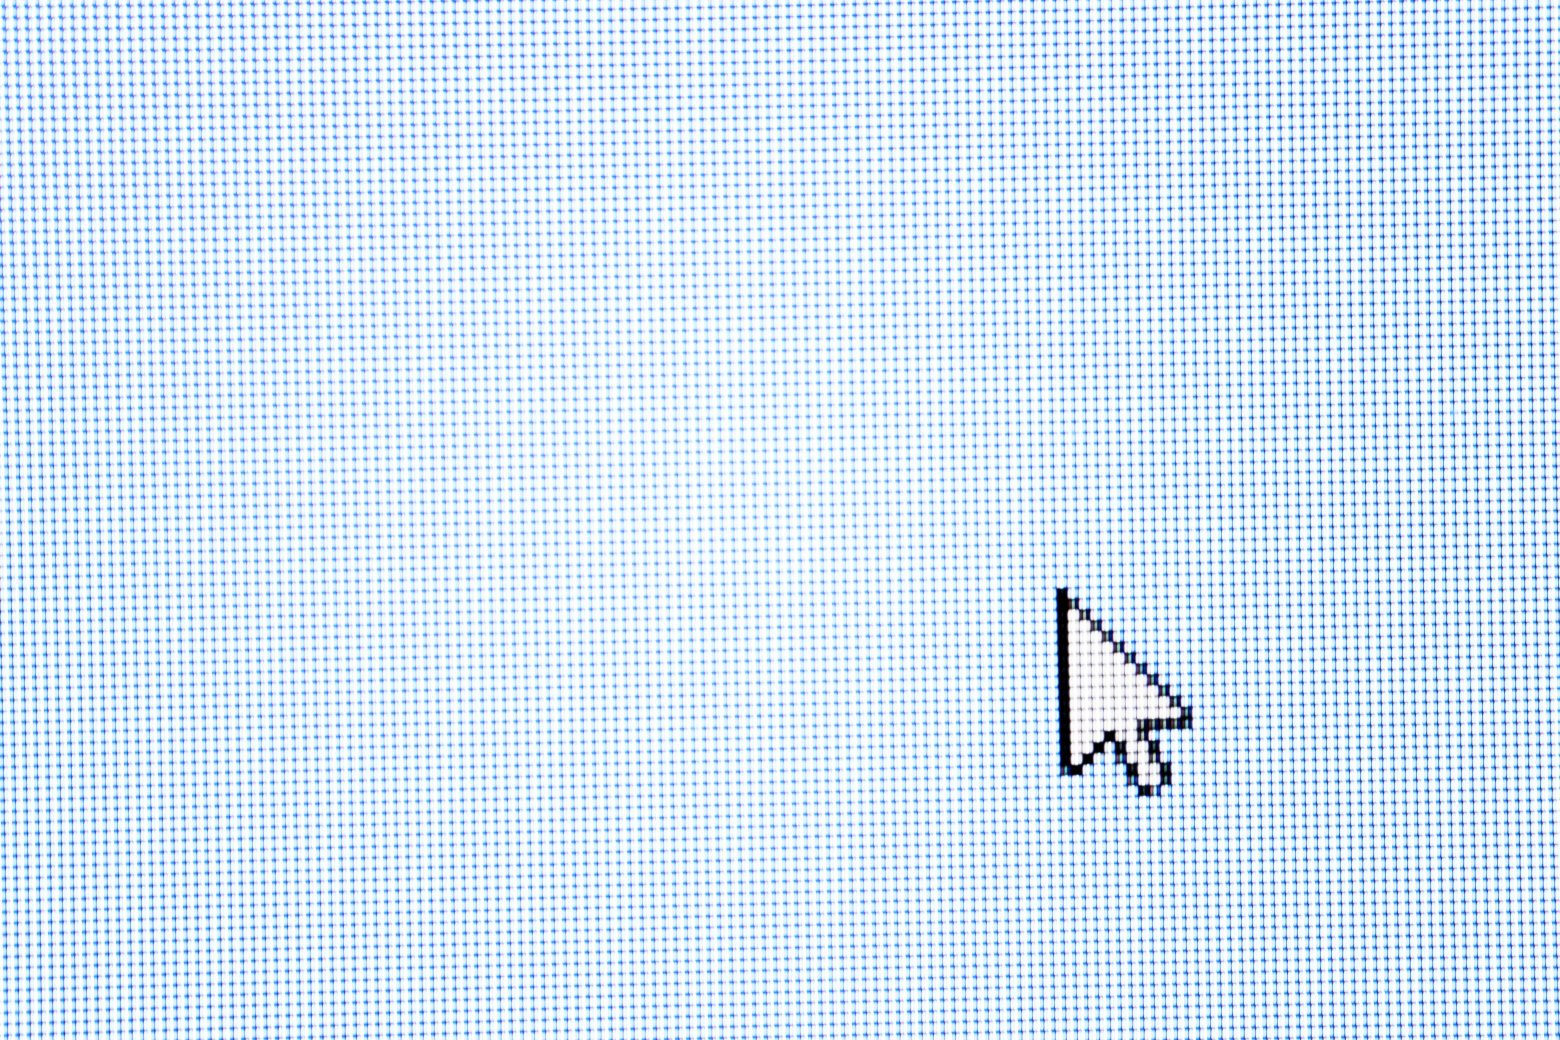 Free stock photo Mouse arrow pointing on a blank computer screen